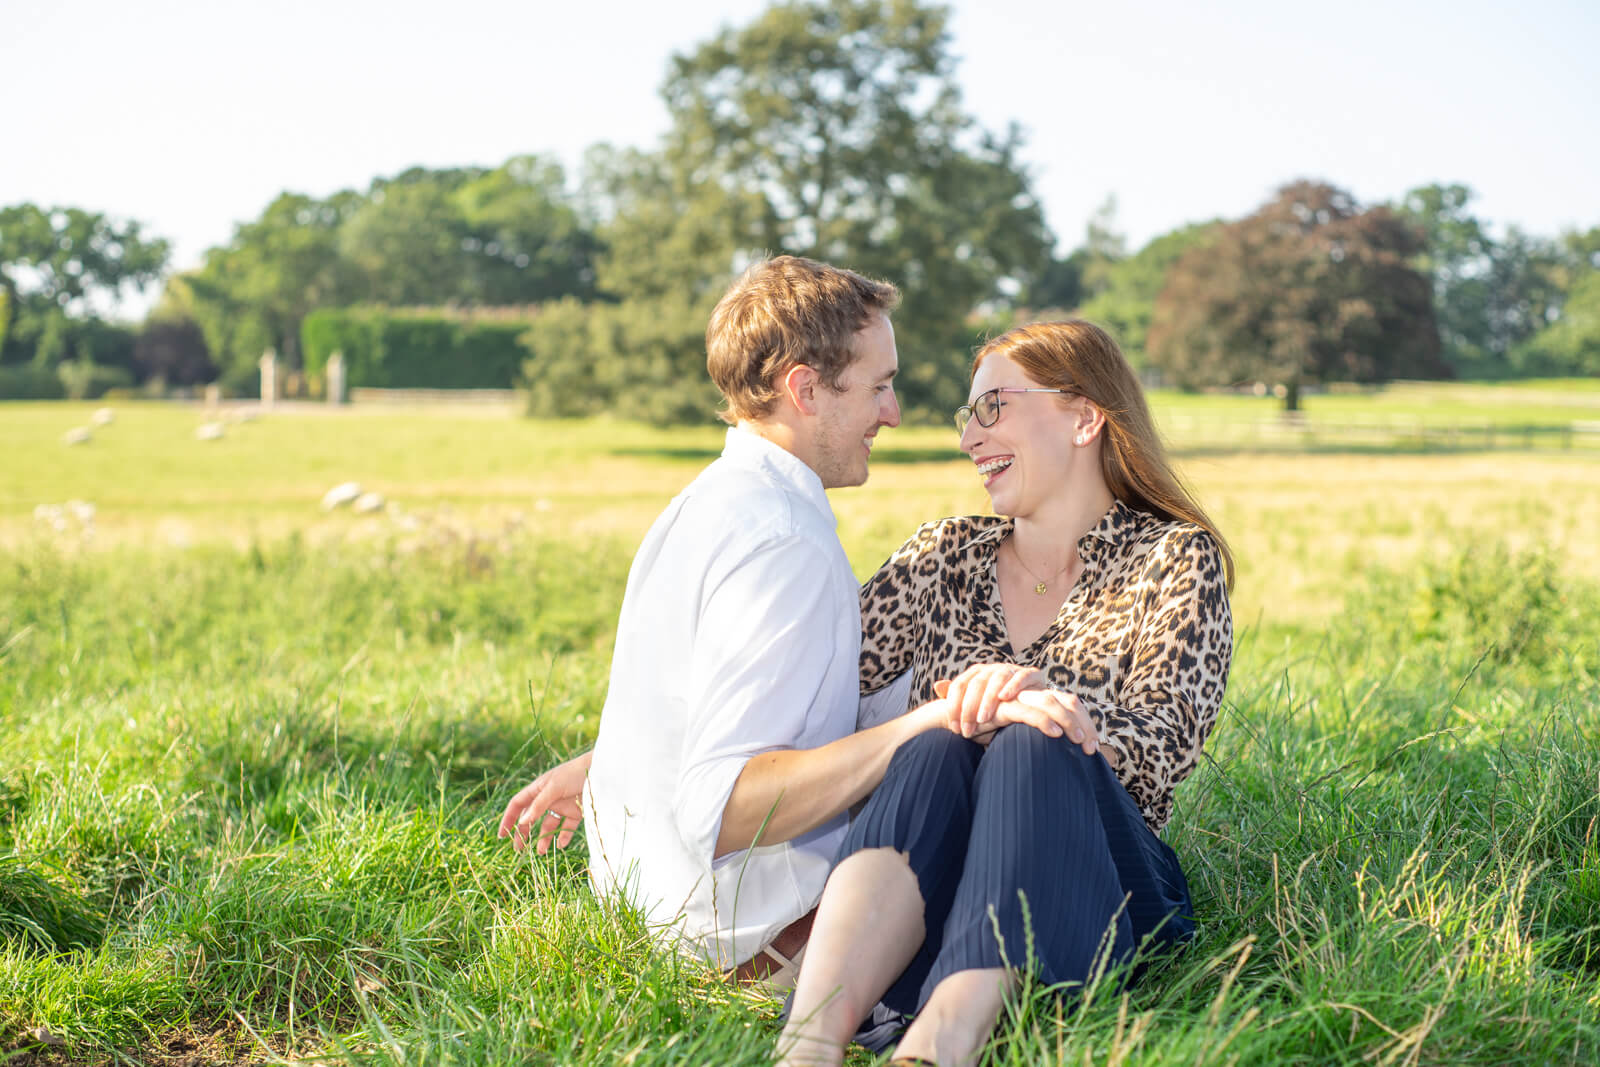 Young couple sit together on the grass laughing in the sunshine